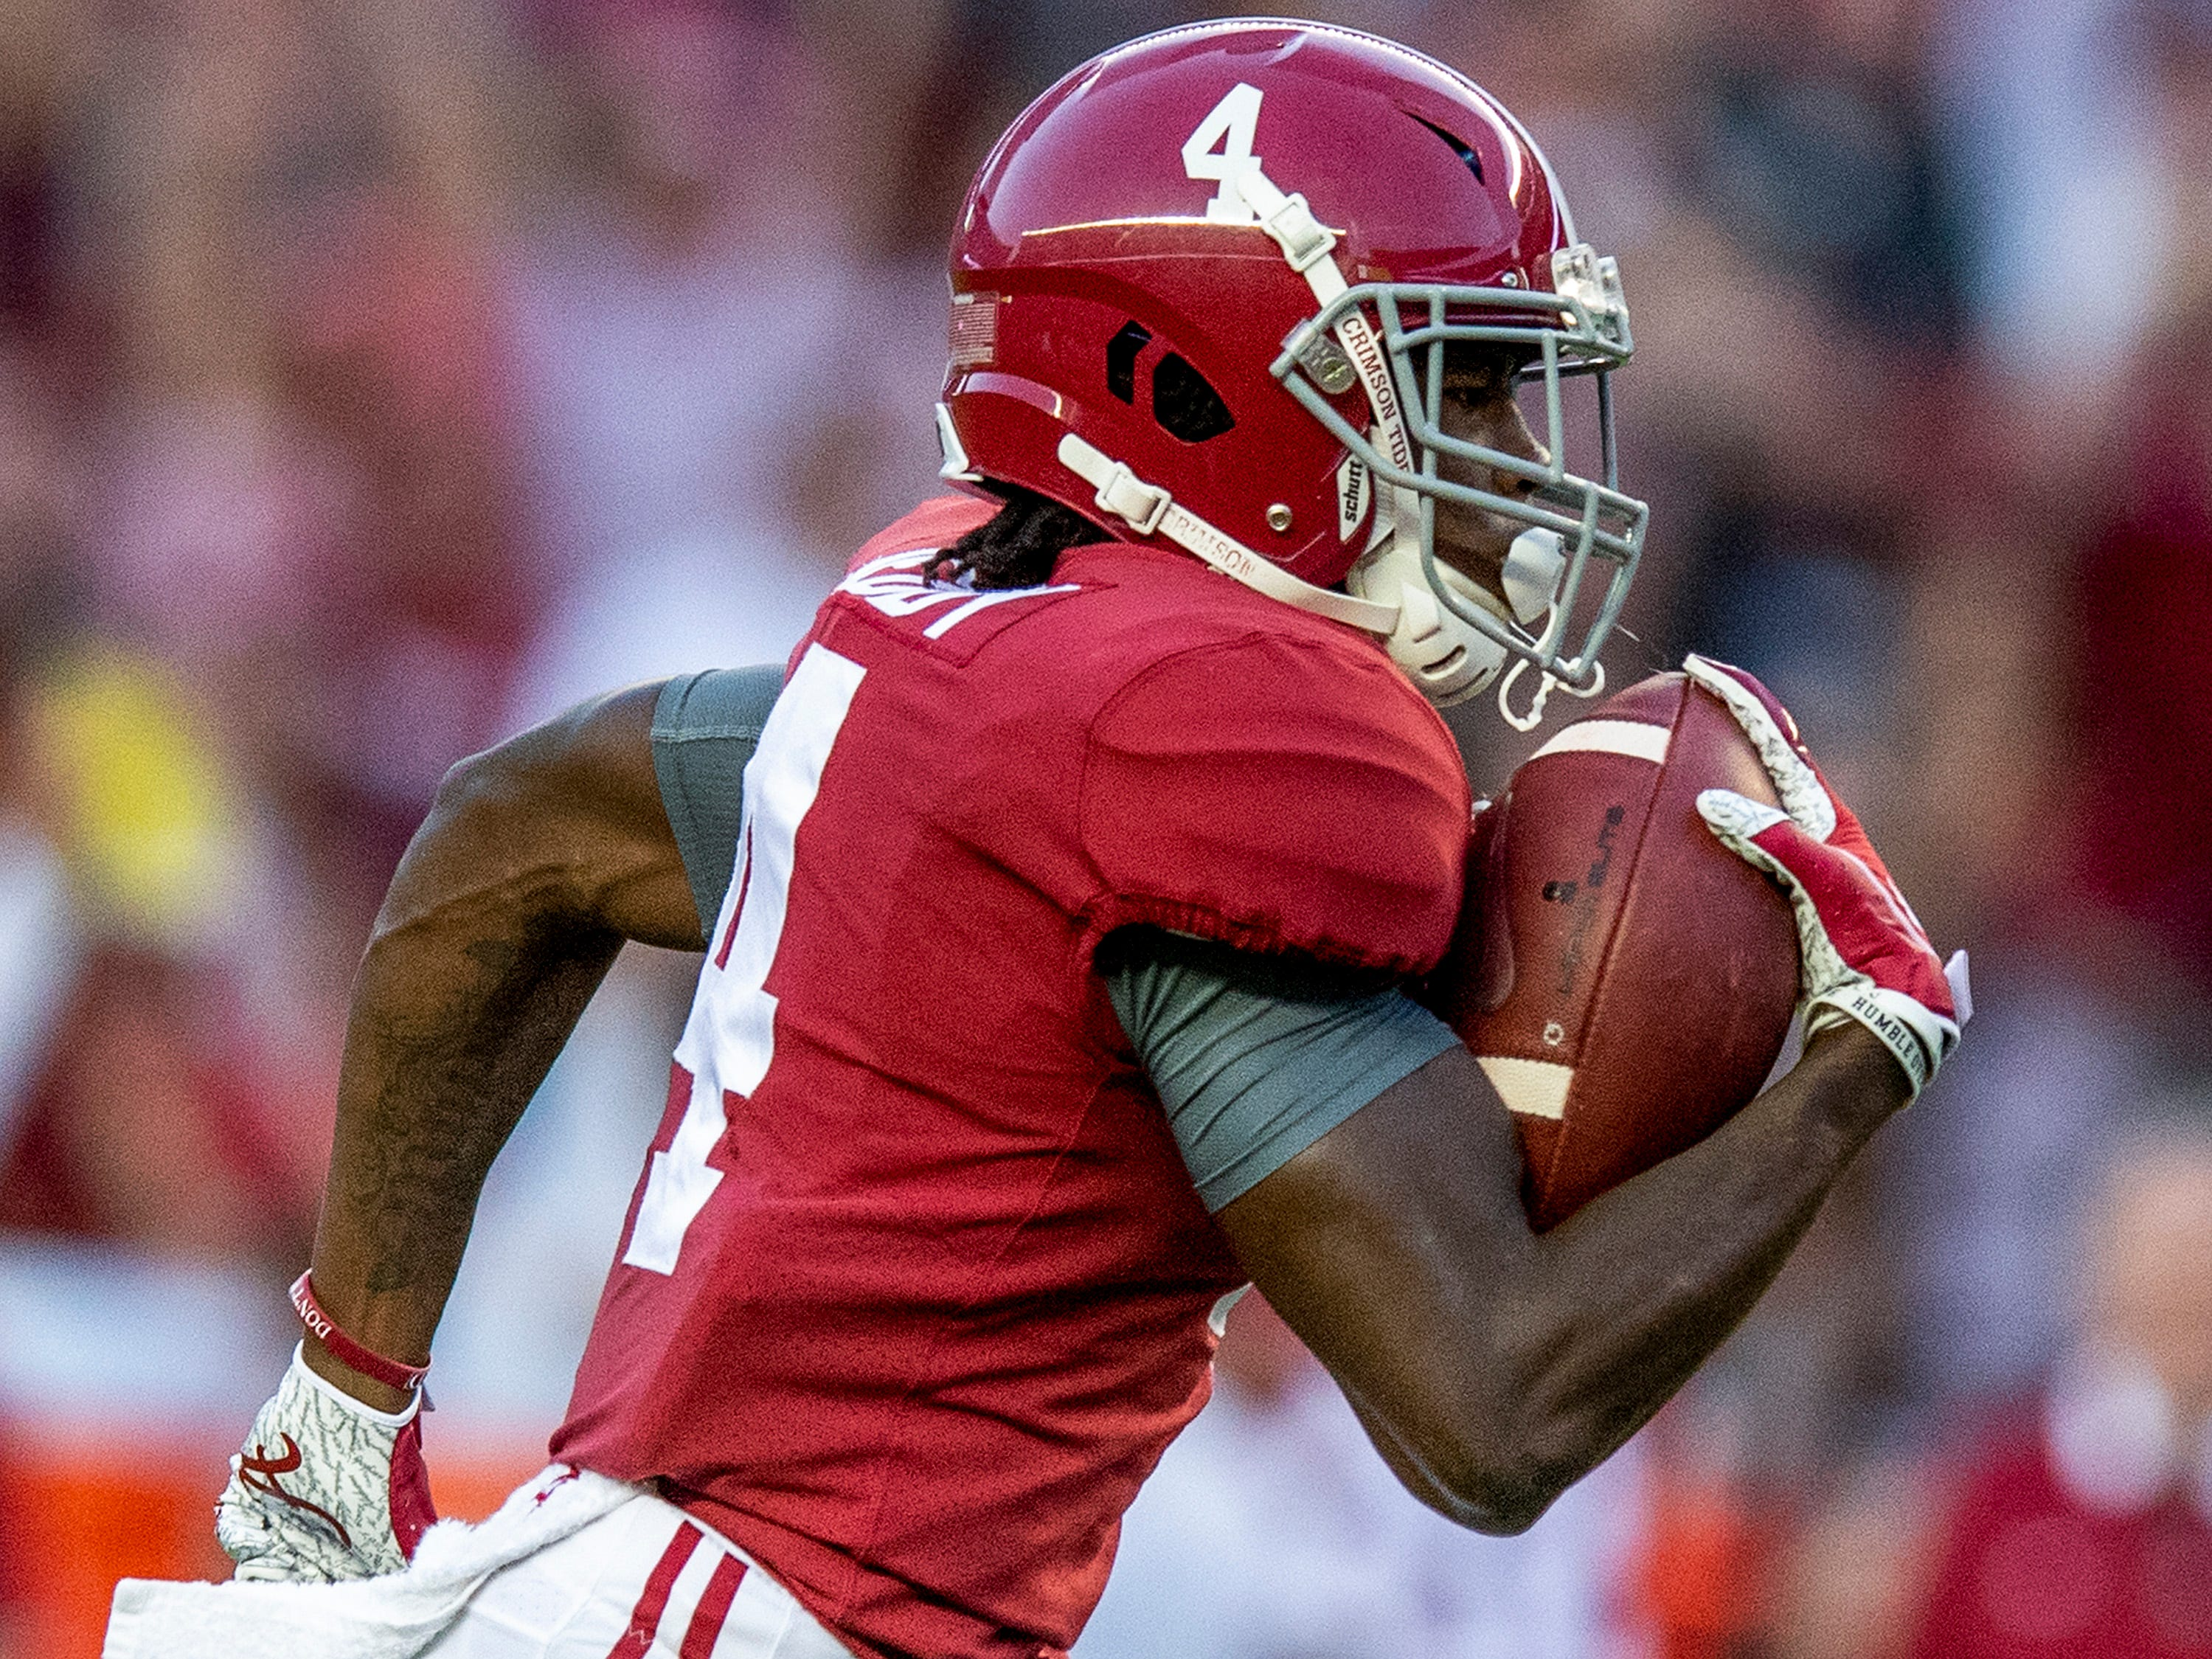 Alabama wide receiver Jerry Jeudy (4) scores an early touchdown against Missouri in first half action at Bryant Denny Stadium in Tuscaloosa, Ala., on Saturday October 13, 2018.